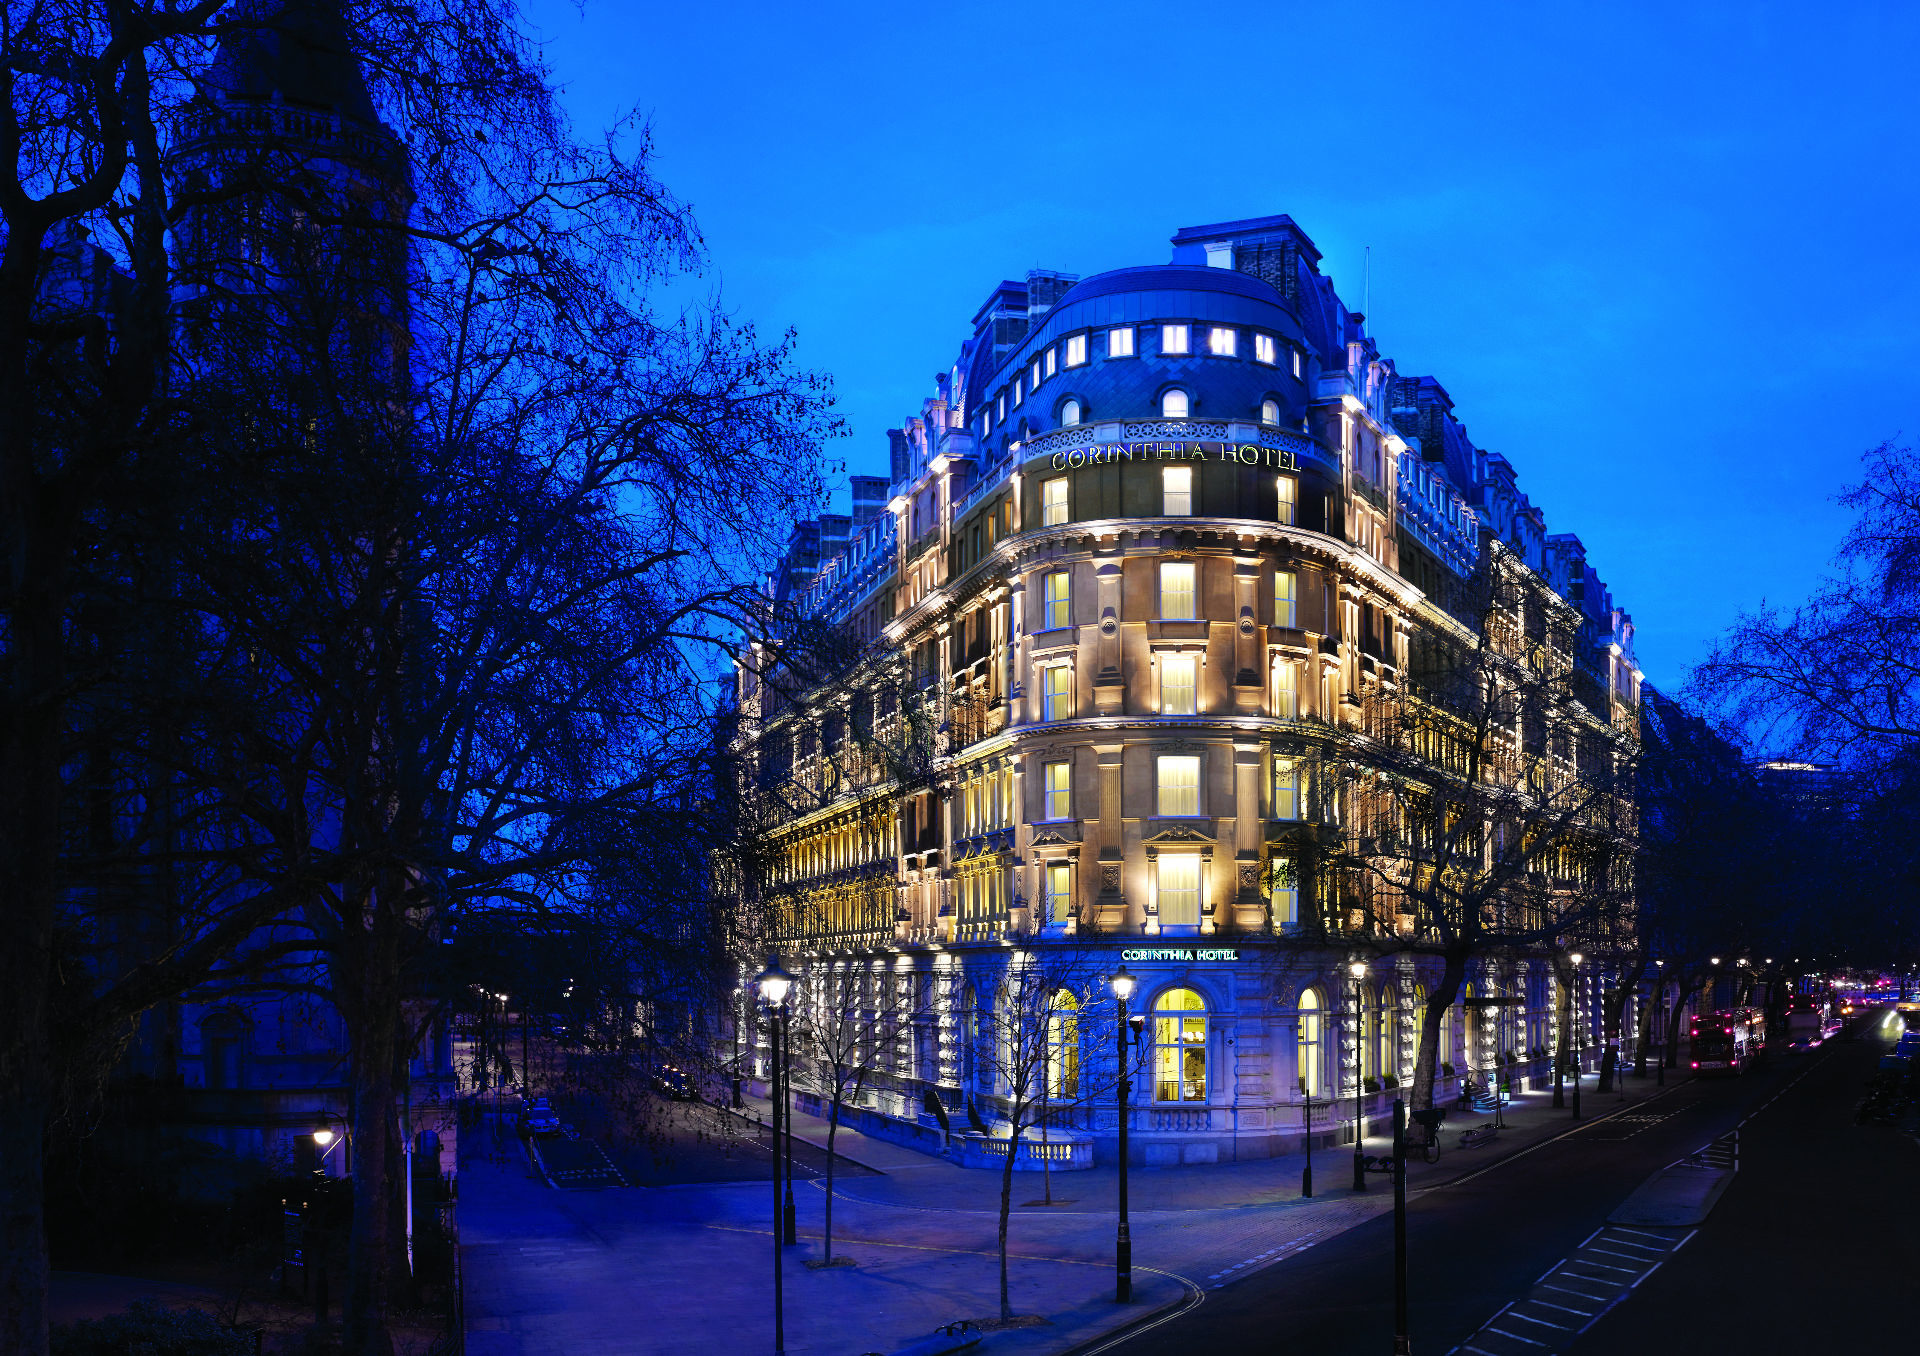 The Corinthia - London Venues